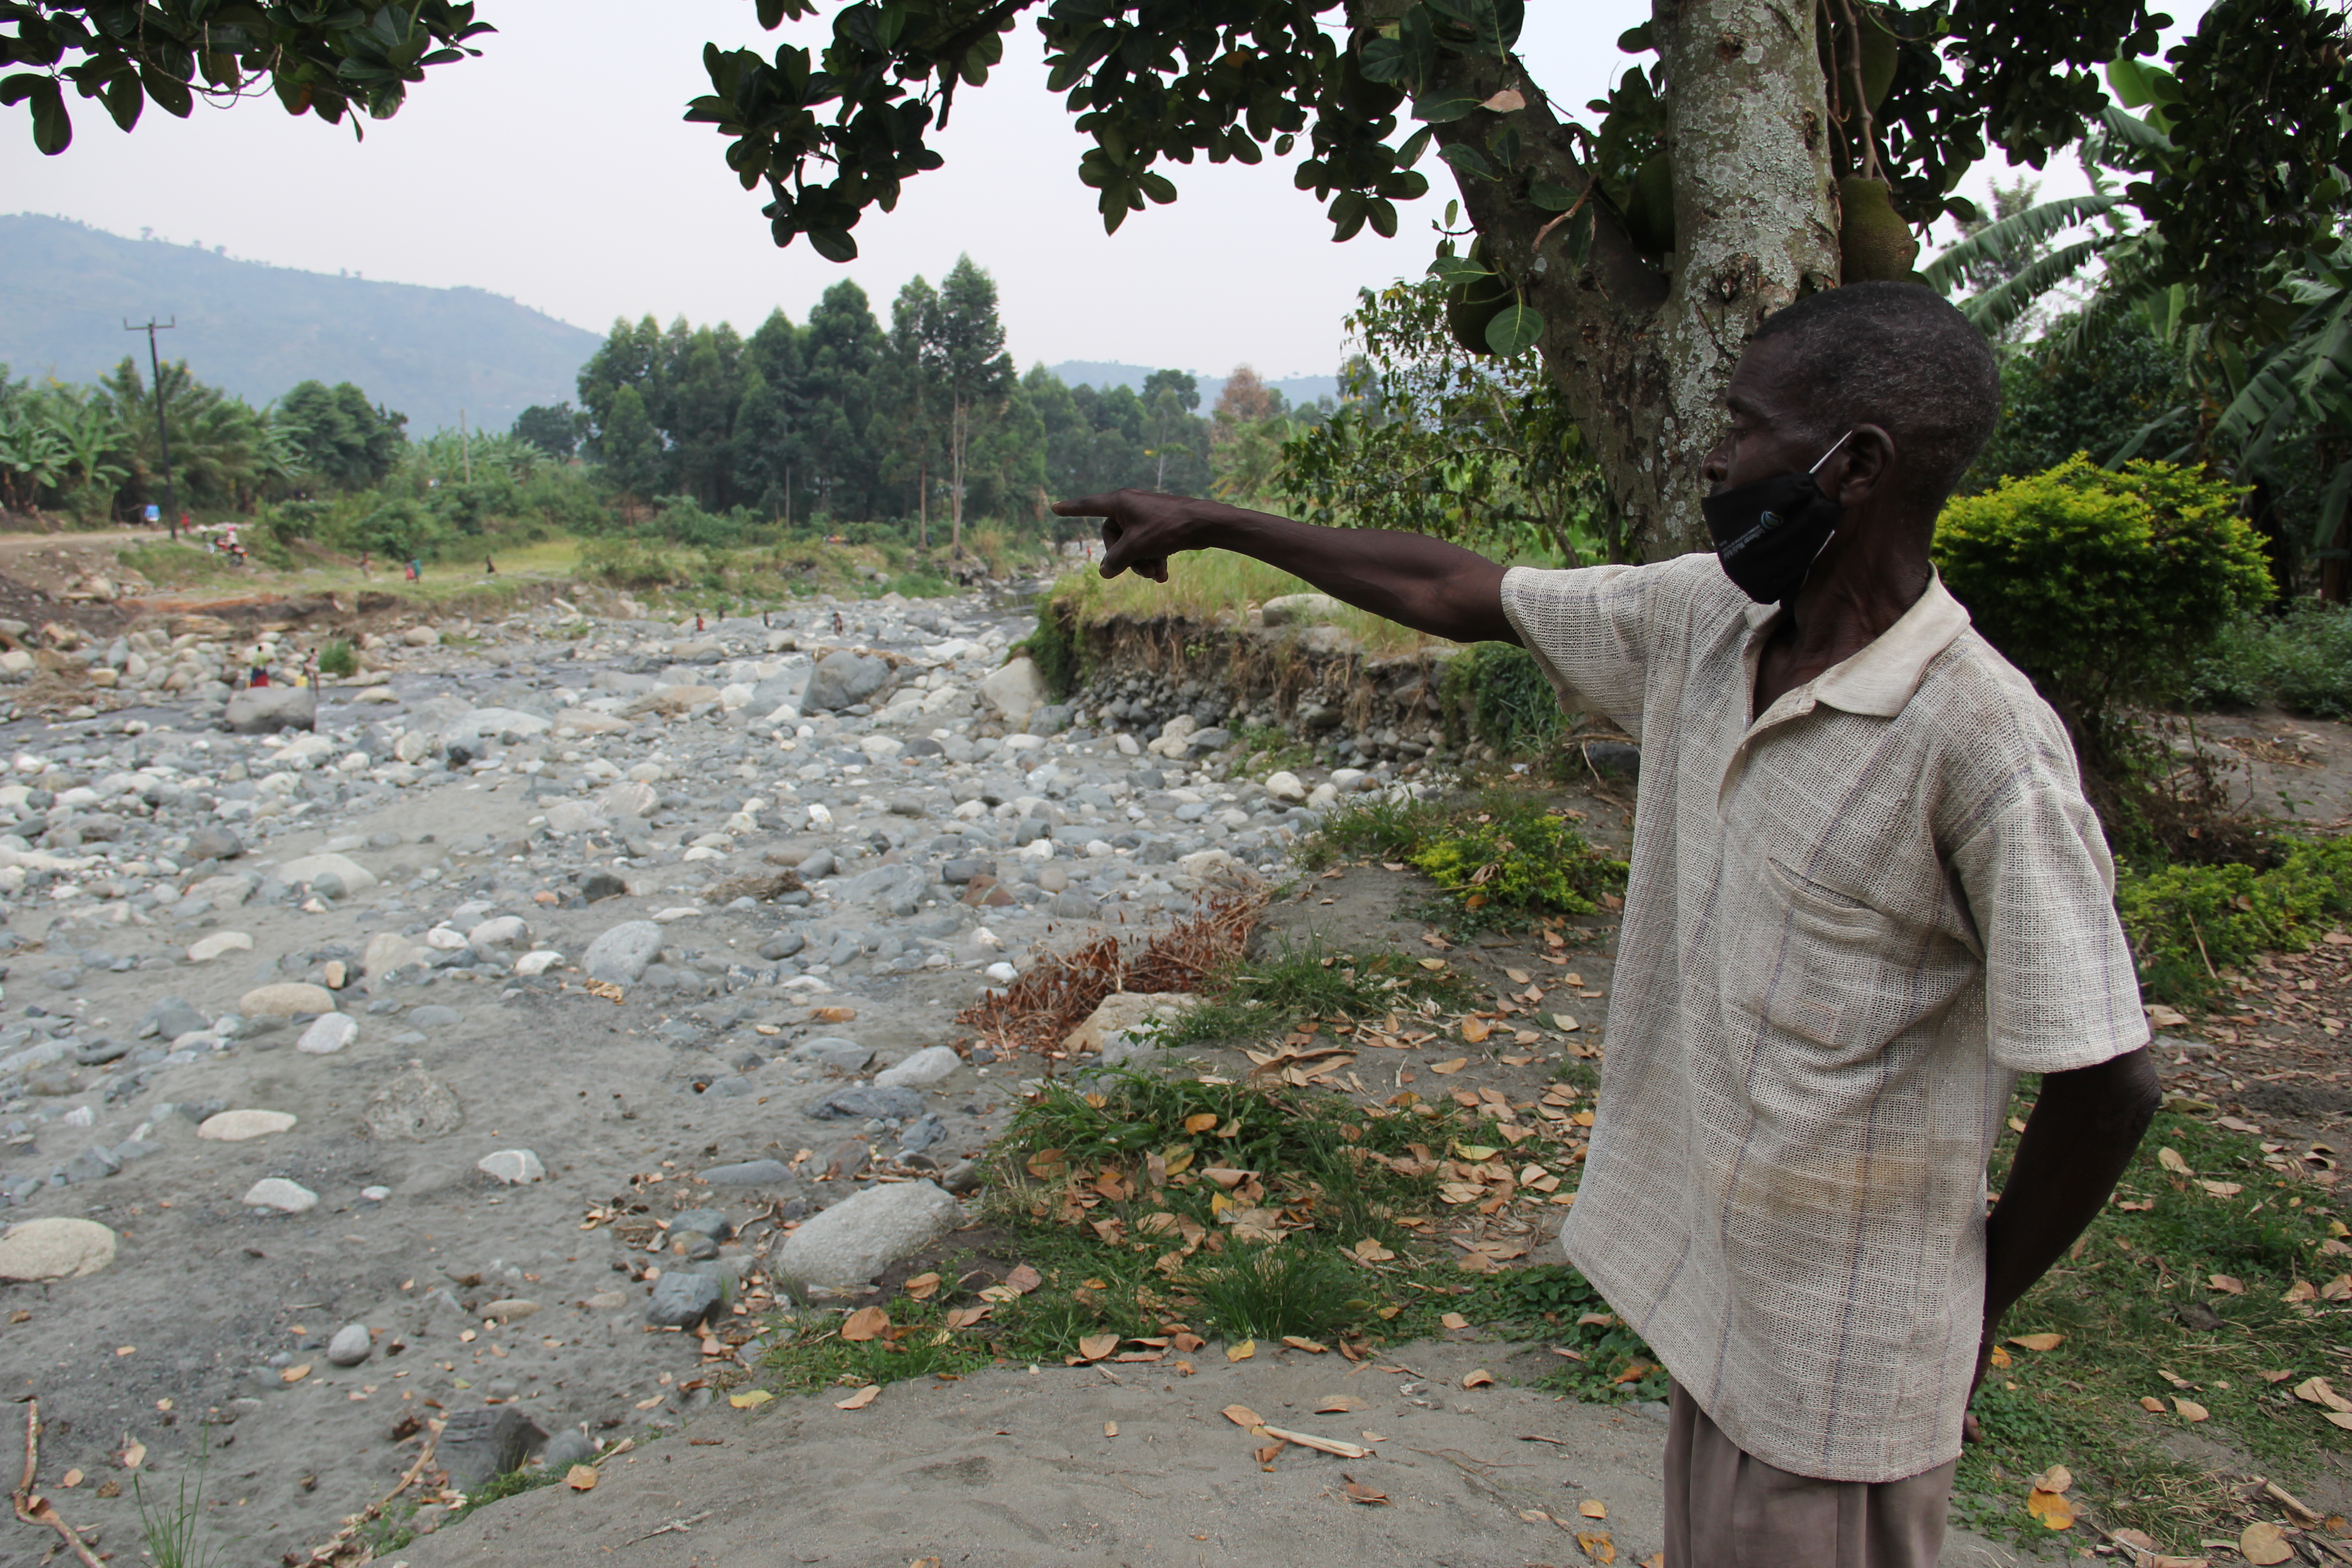 Mbusi points to where his home once was, but now lies flood debris.